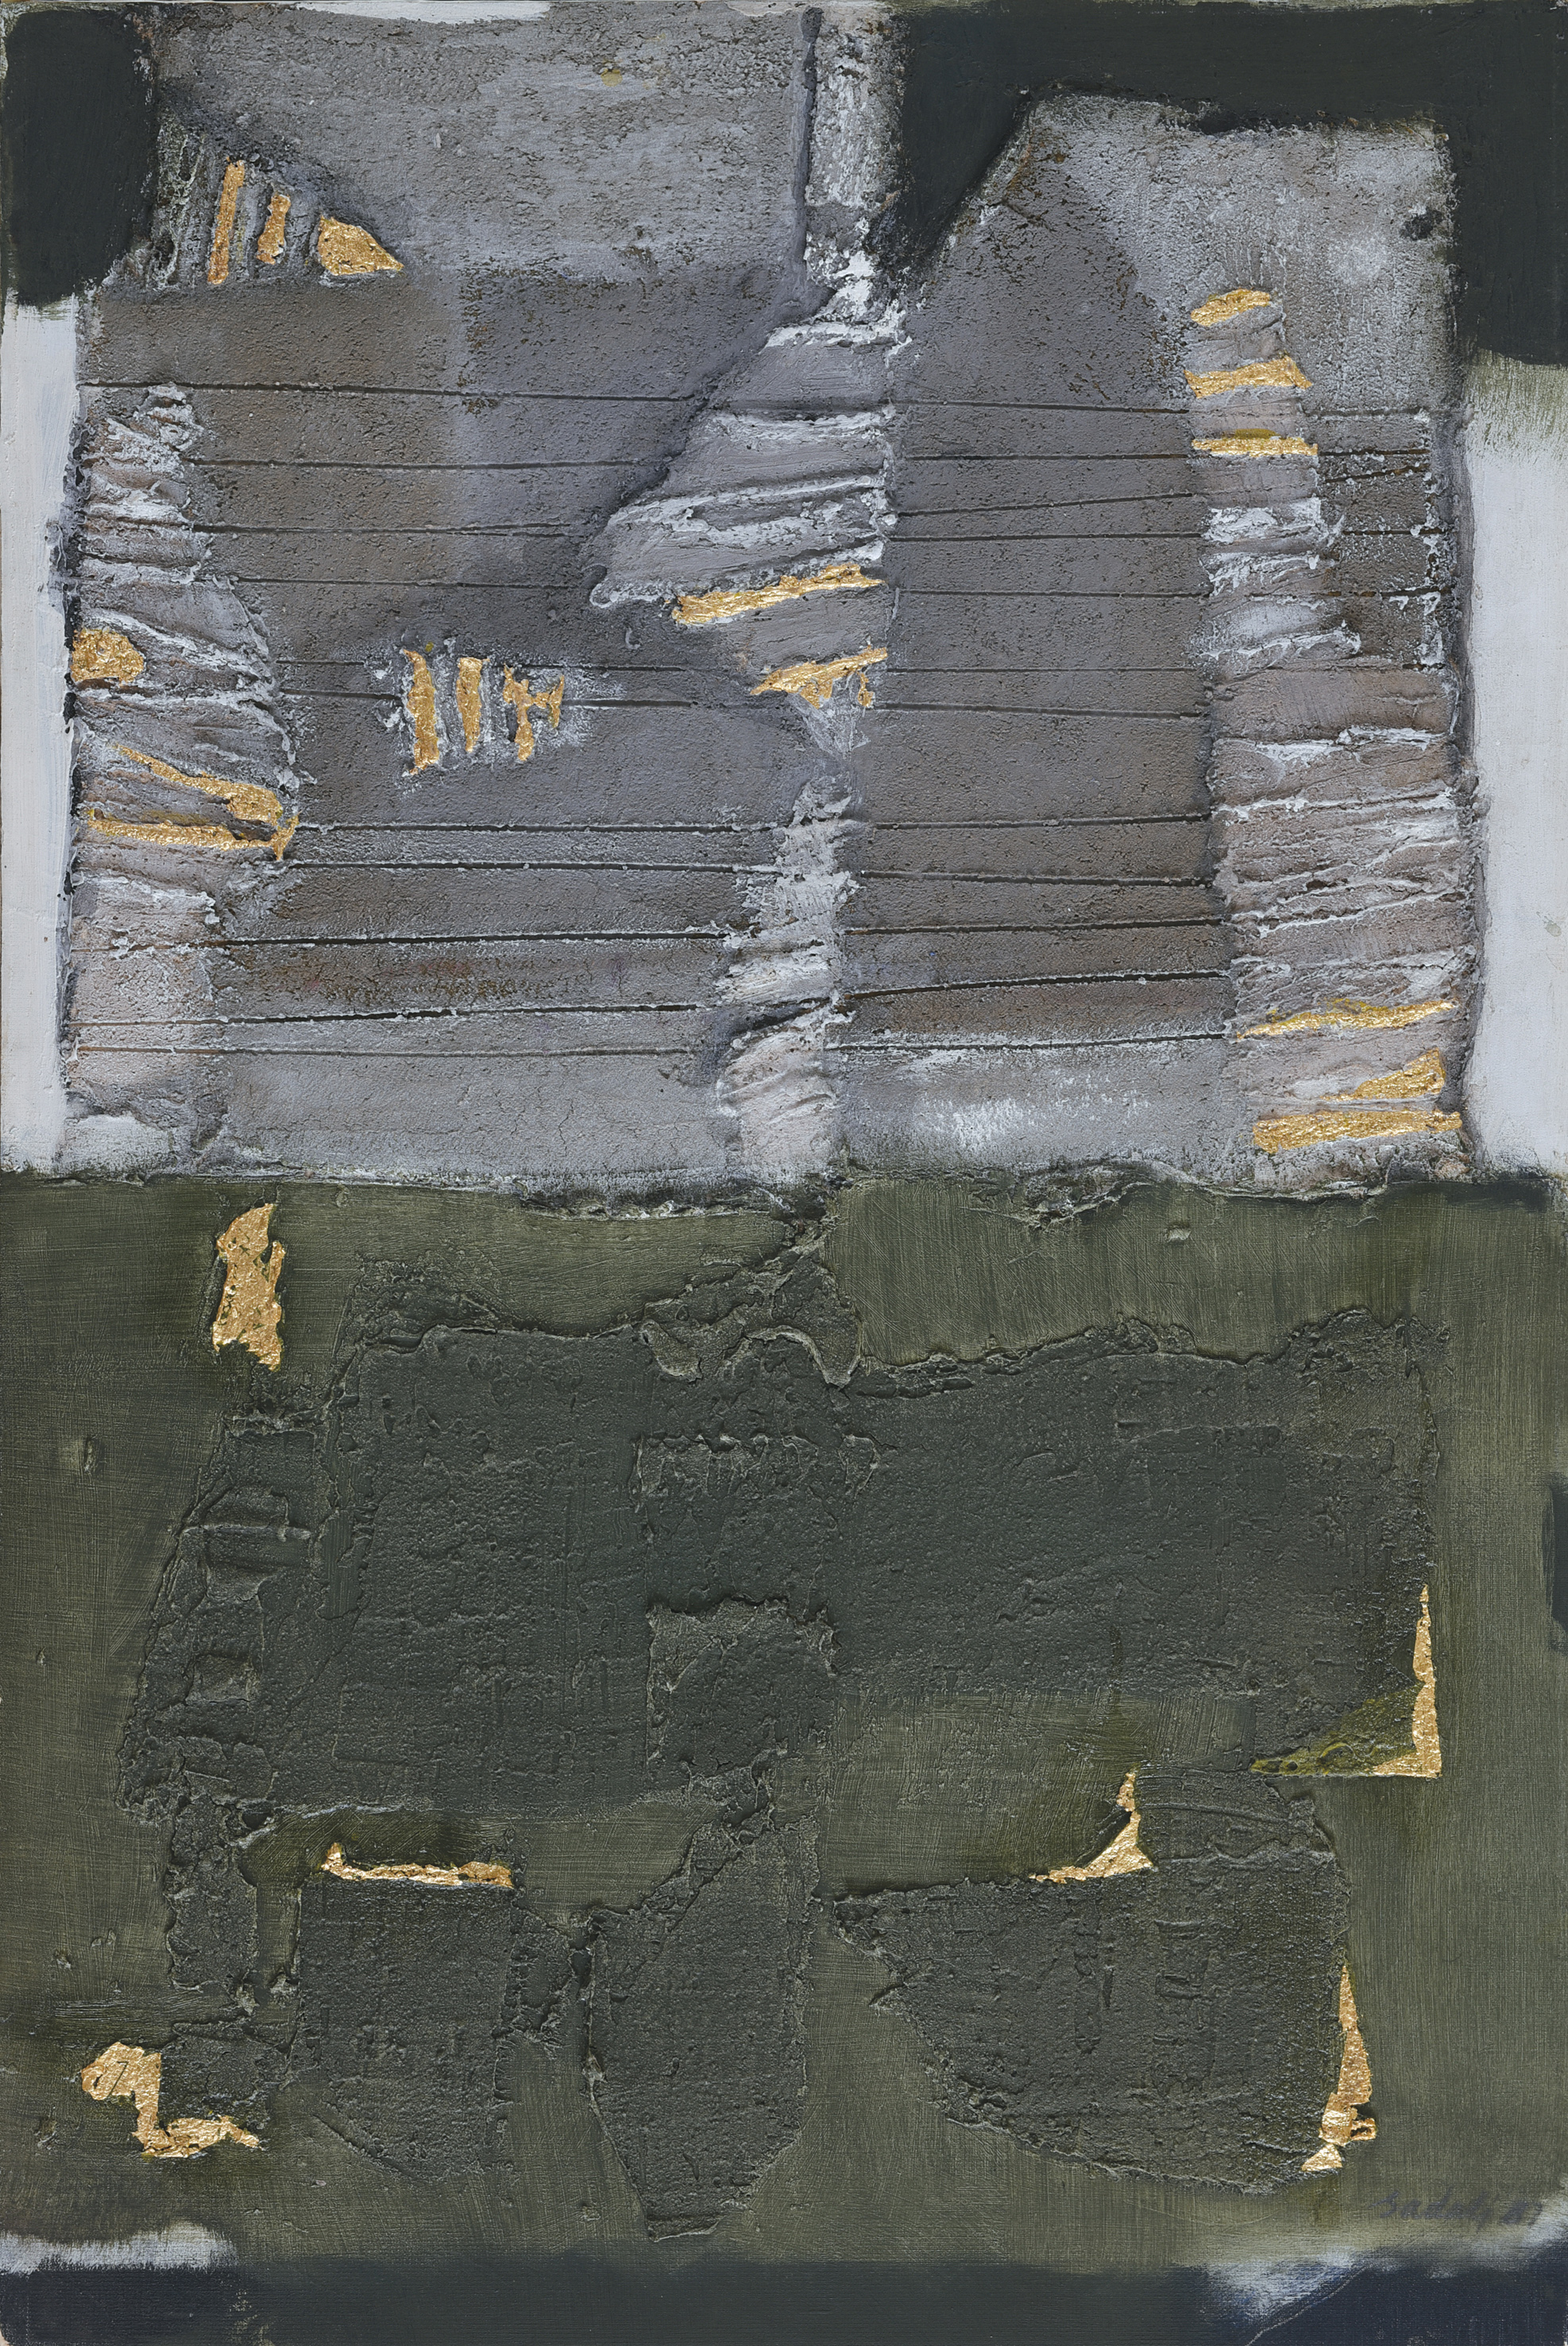 Ahmad Sadali, Komposisi Abu-Abu Hijau dan Emas (Gray, Green and Gold Composition), 1987, 75 x 50 cm